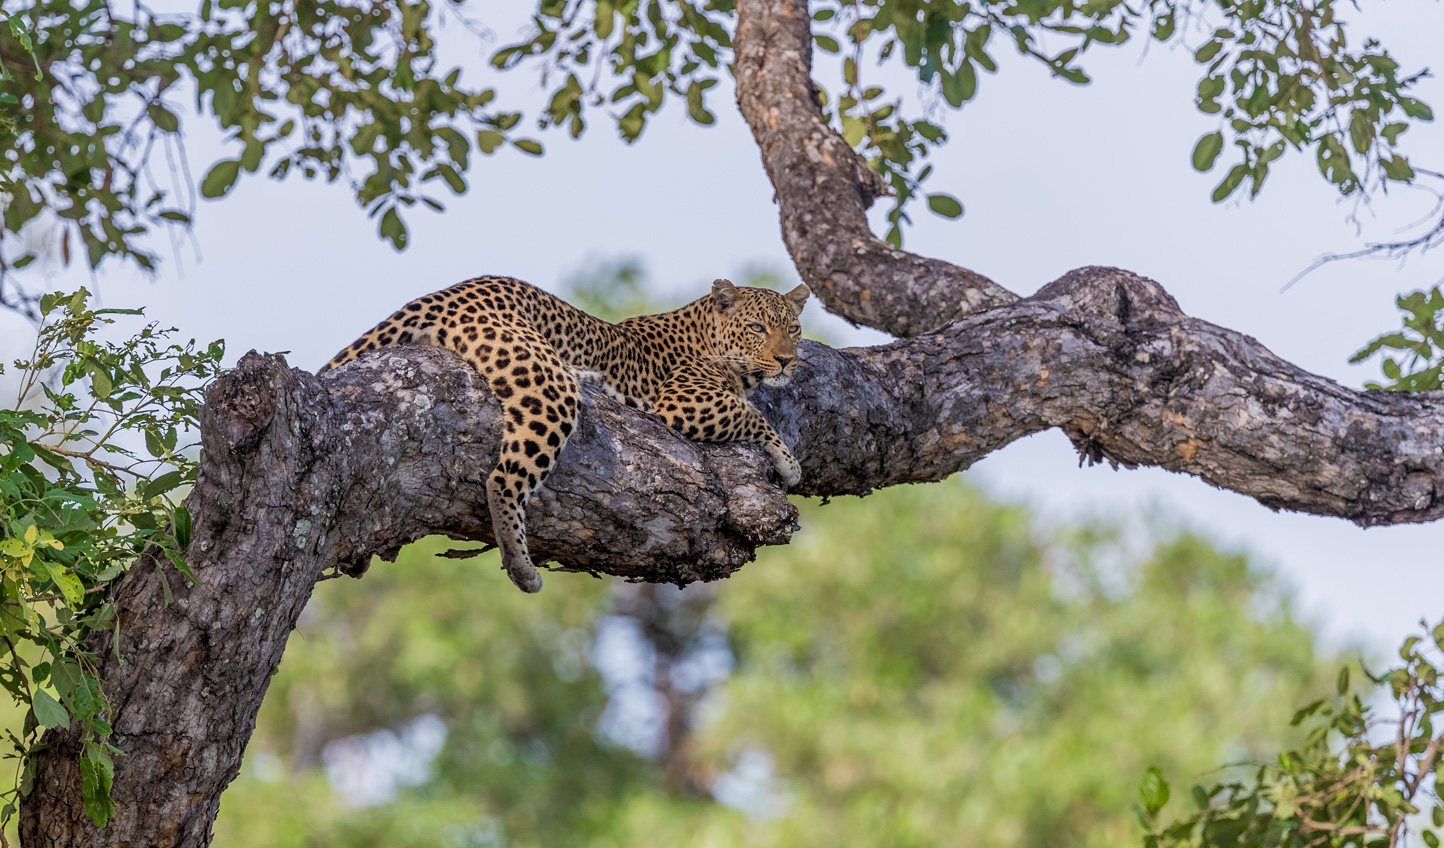 Spot leopards in the South Luangwa National Park